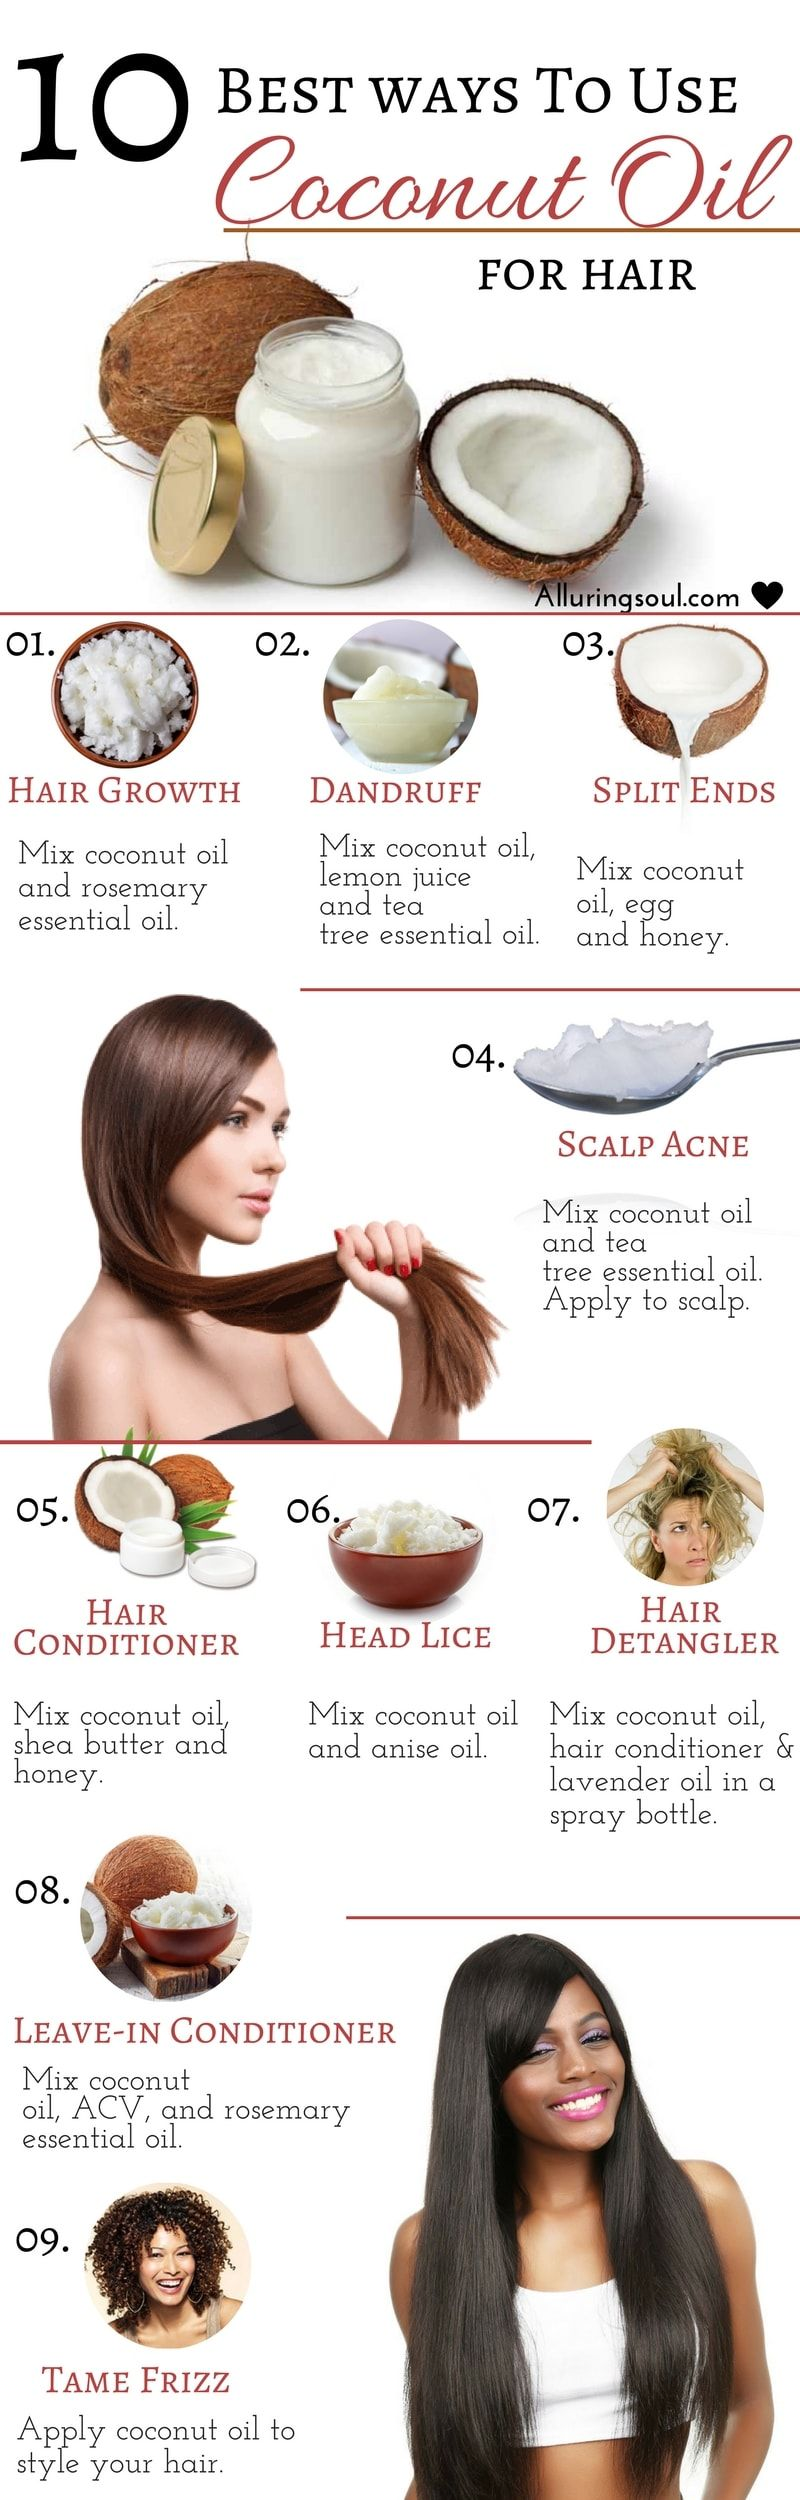 Coconut Oil For Hair Is Being Used From Centuries It Has The Power To Make Your Hair Strong Shiny And Much More Benefits To Reap From It